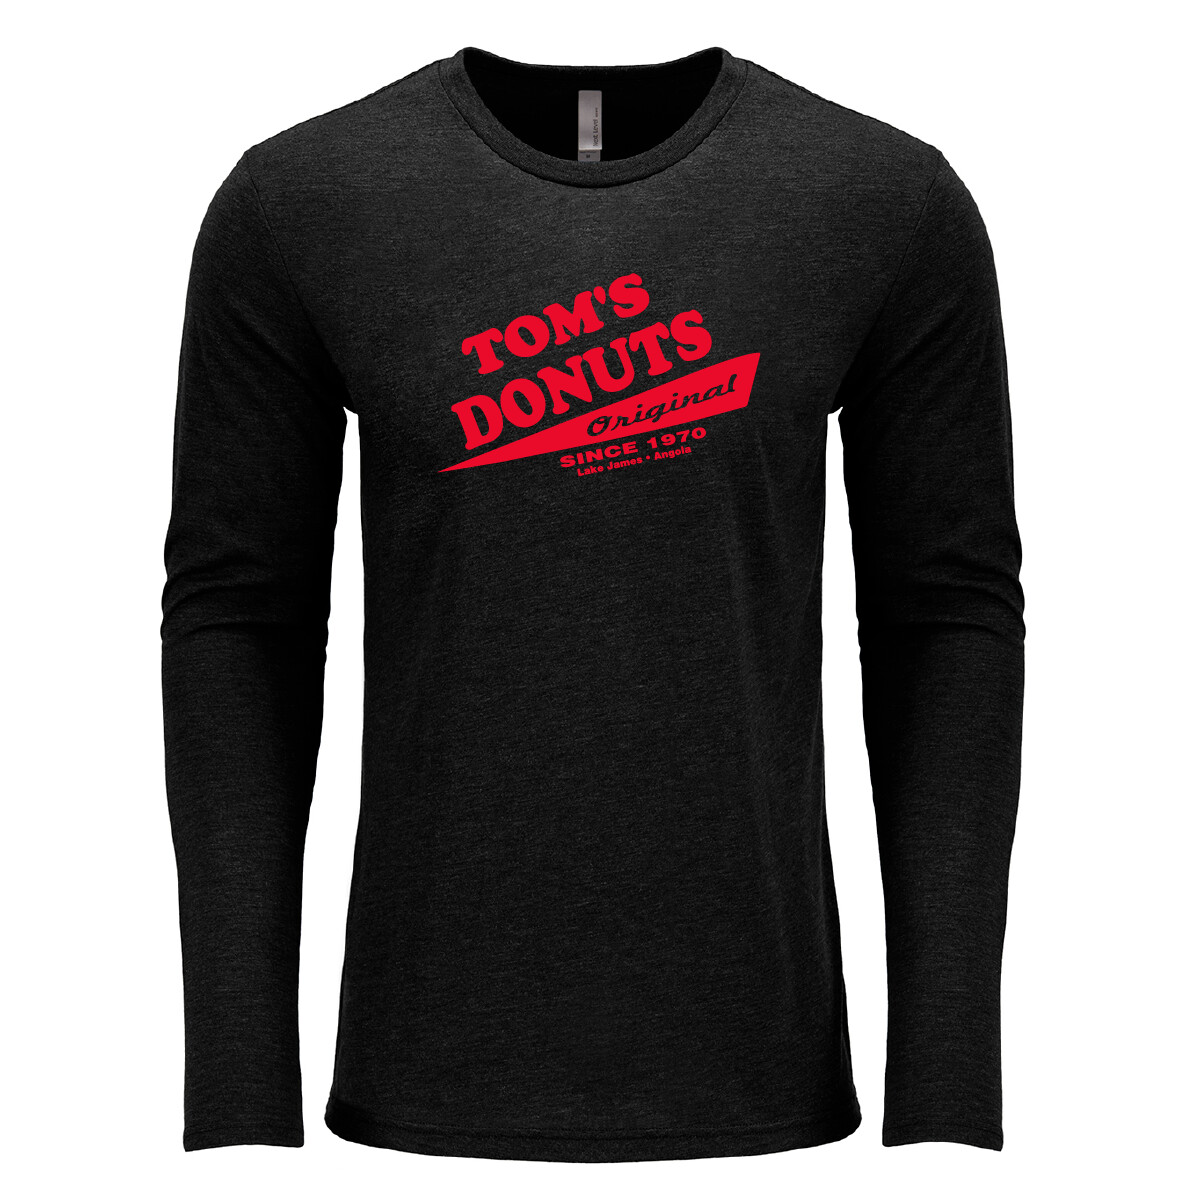 Unisex Tom's Vintage Black Long Sleeve Tee